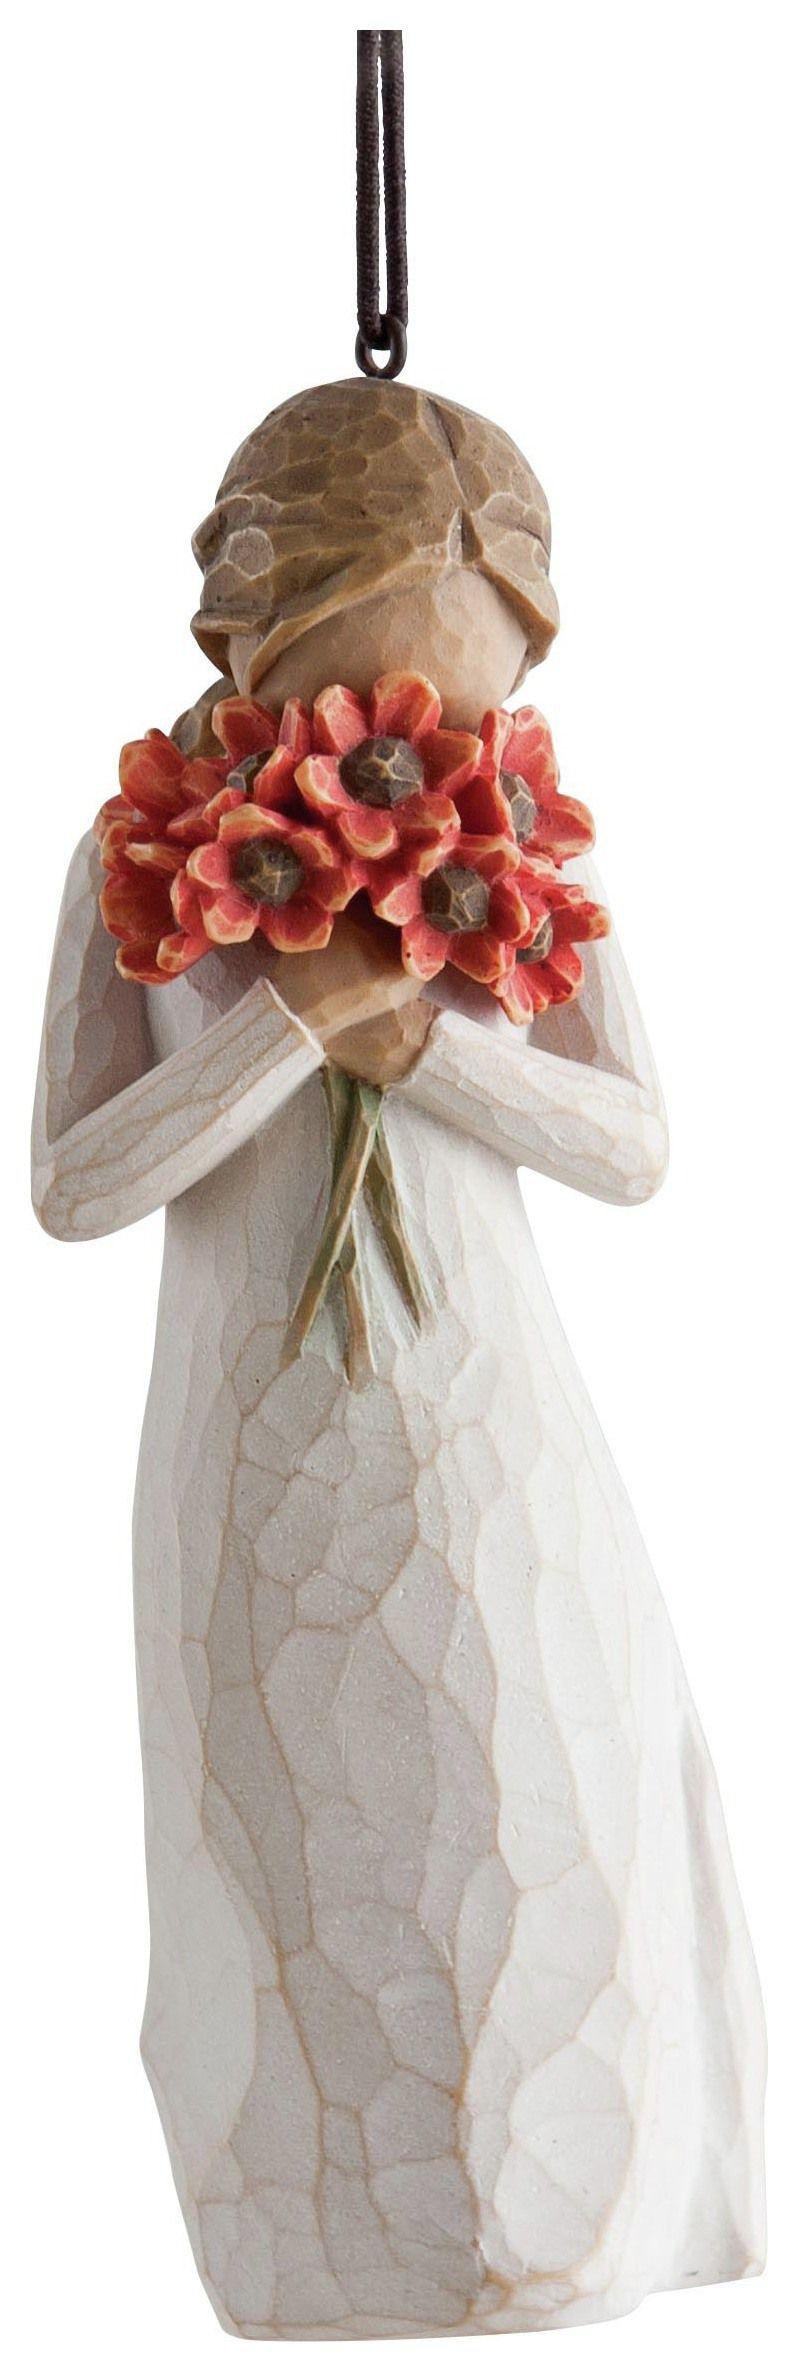 Willow Tree - Surrounded by Love Hanging Ornament lowest price